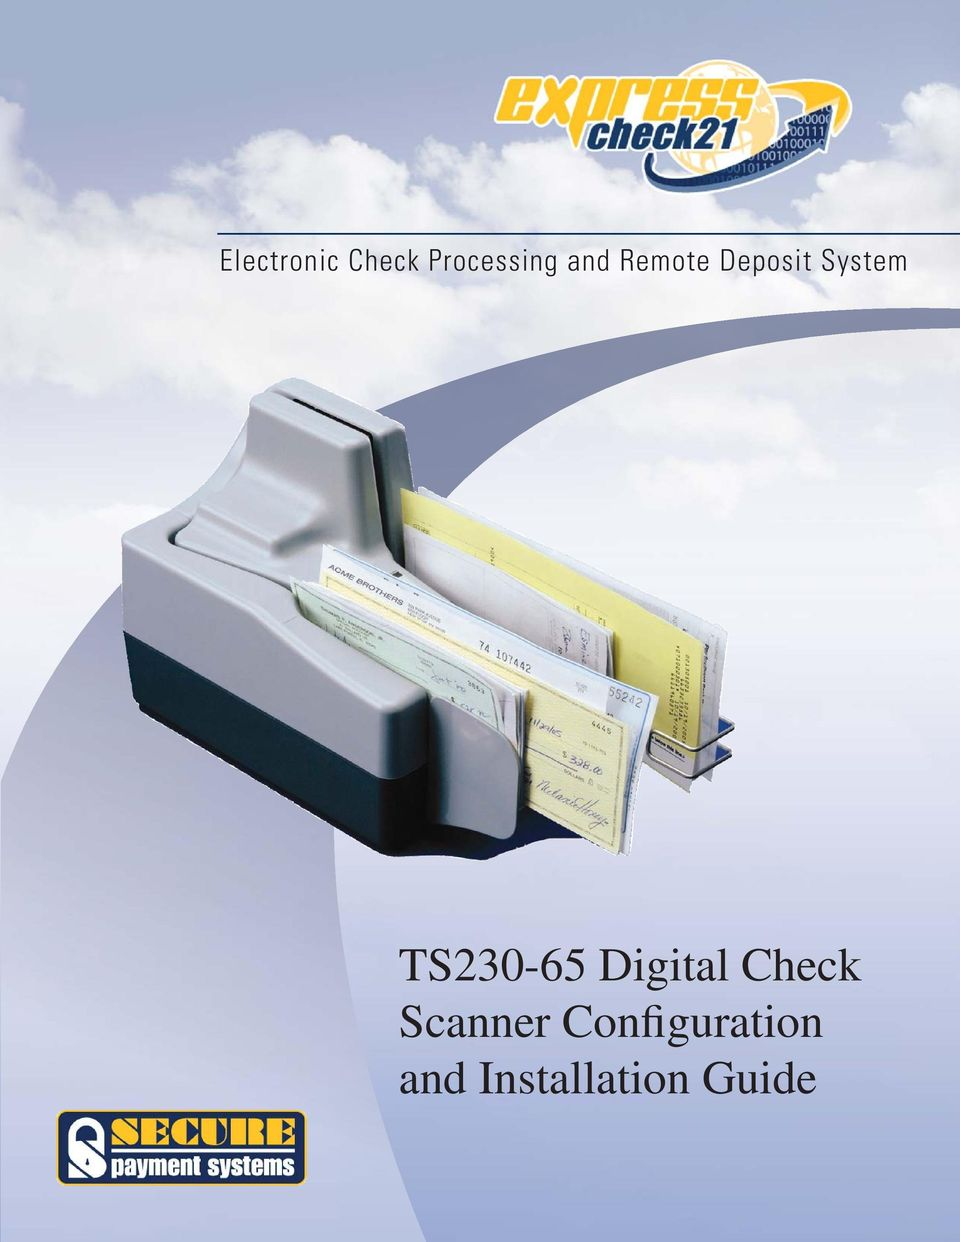 TS230-65 Digital Check Scanner